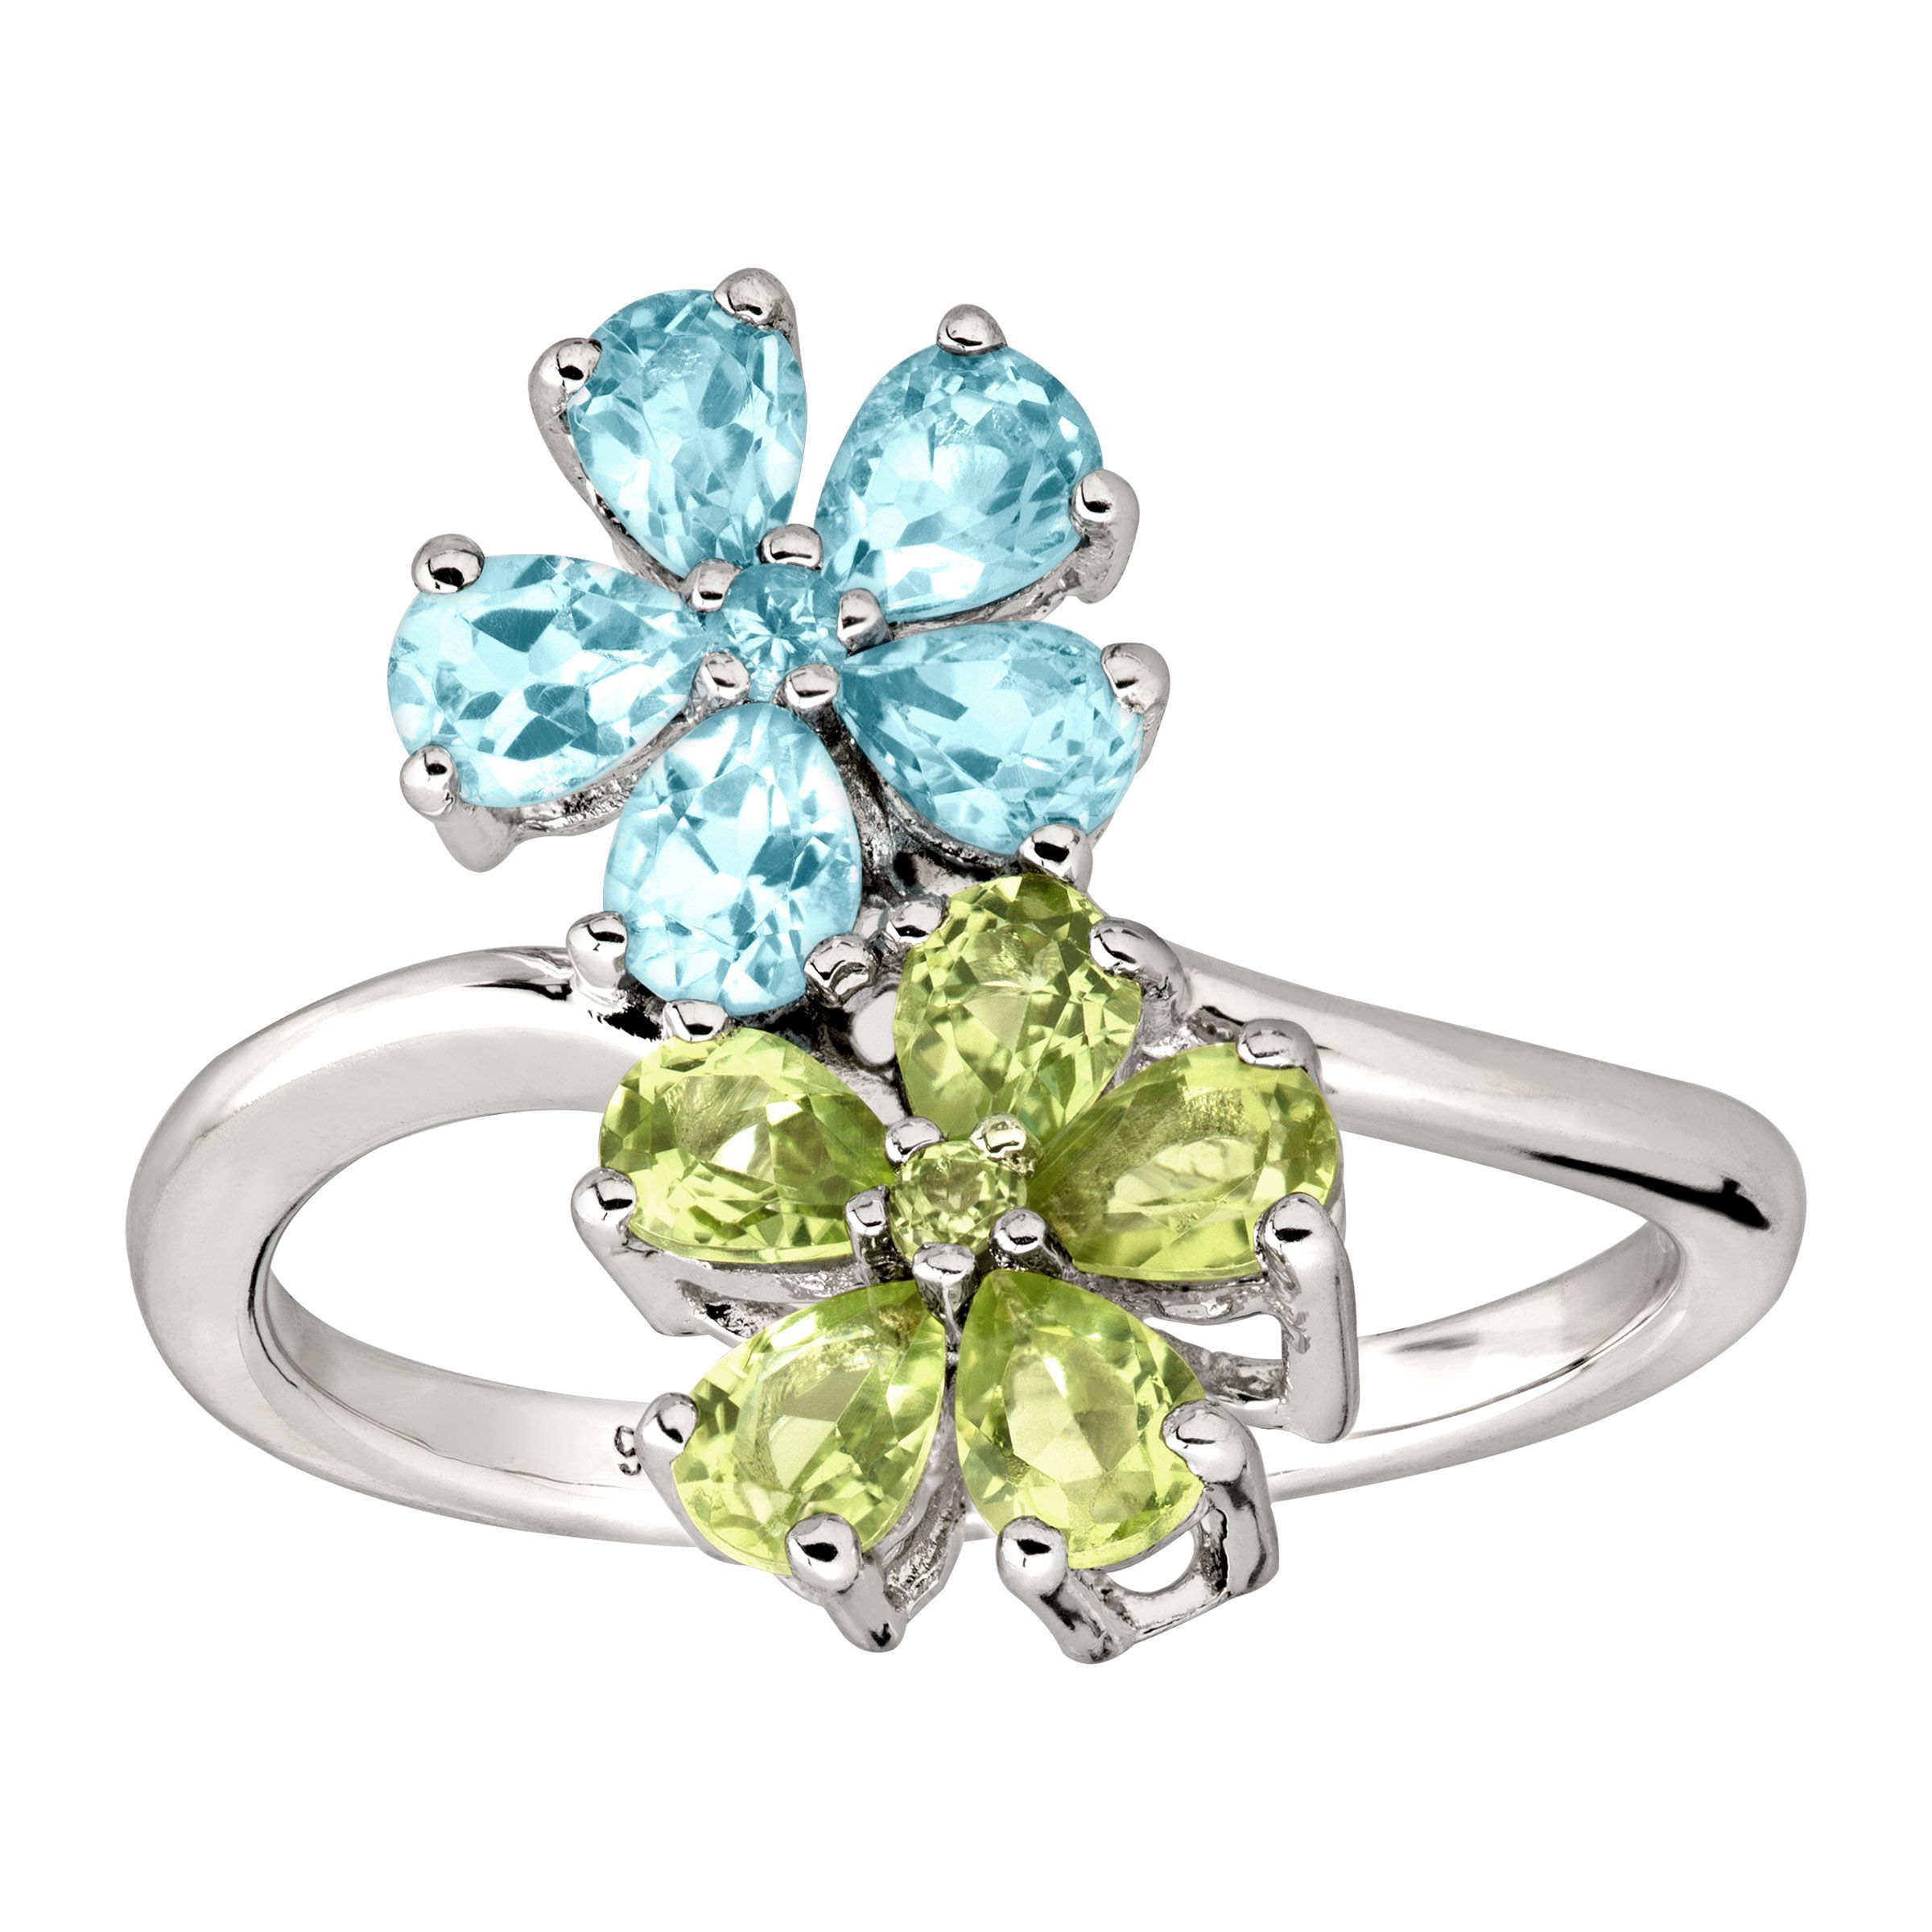 e24ed499ec5d1 Details about 2 ct Natural Swiss Blue Topaz & Peridot Flower Ring in  Rhodium Over Silver